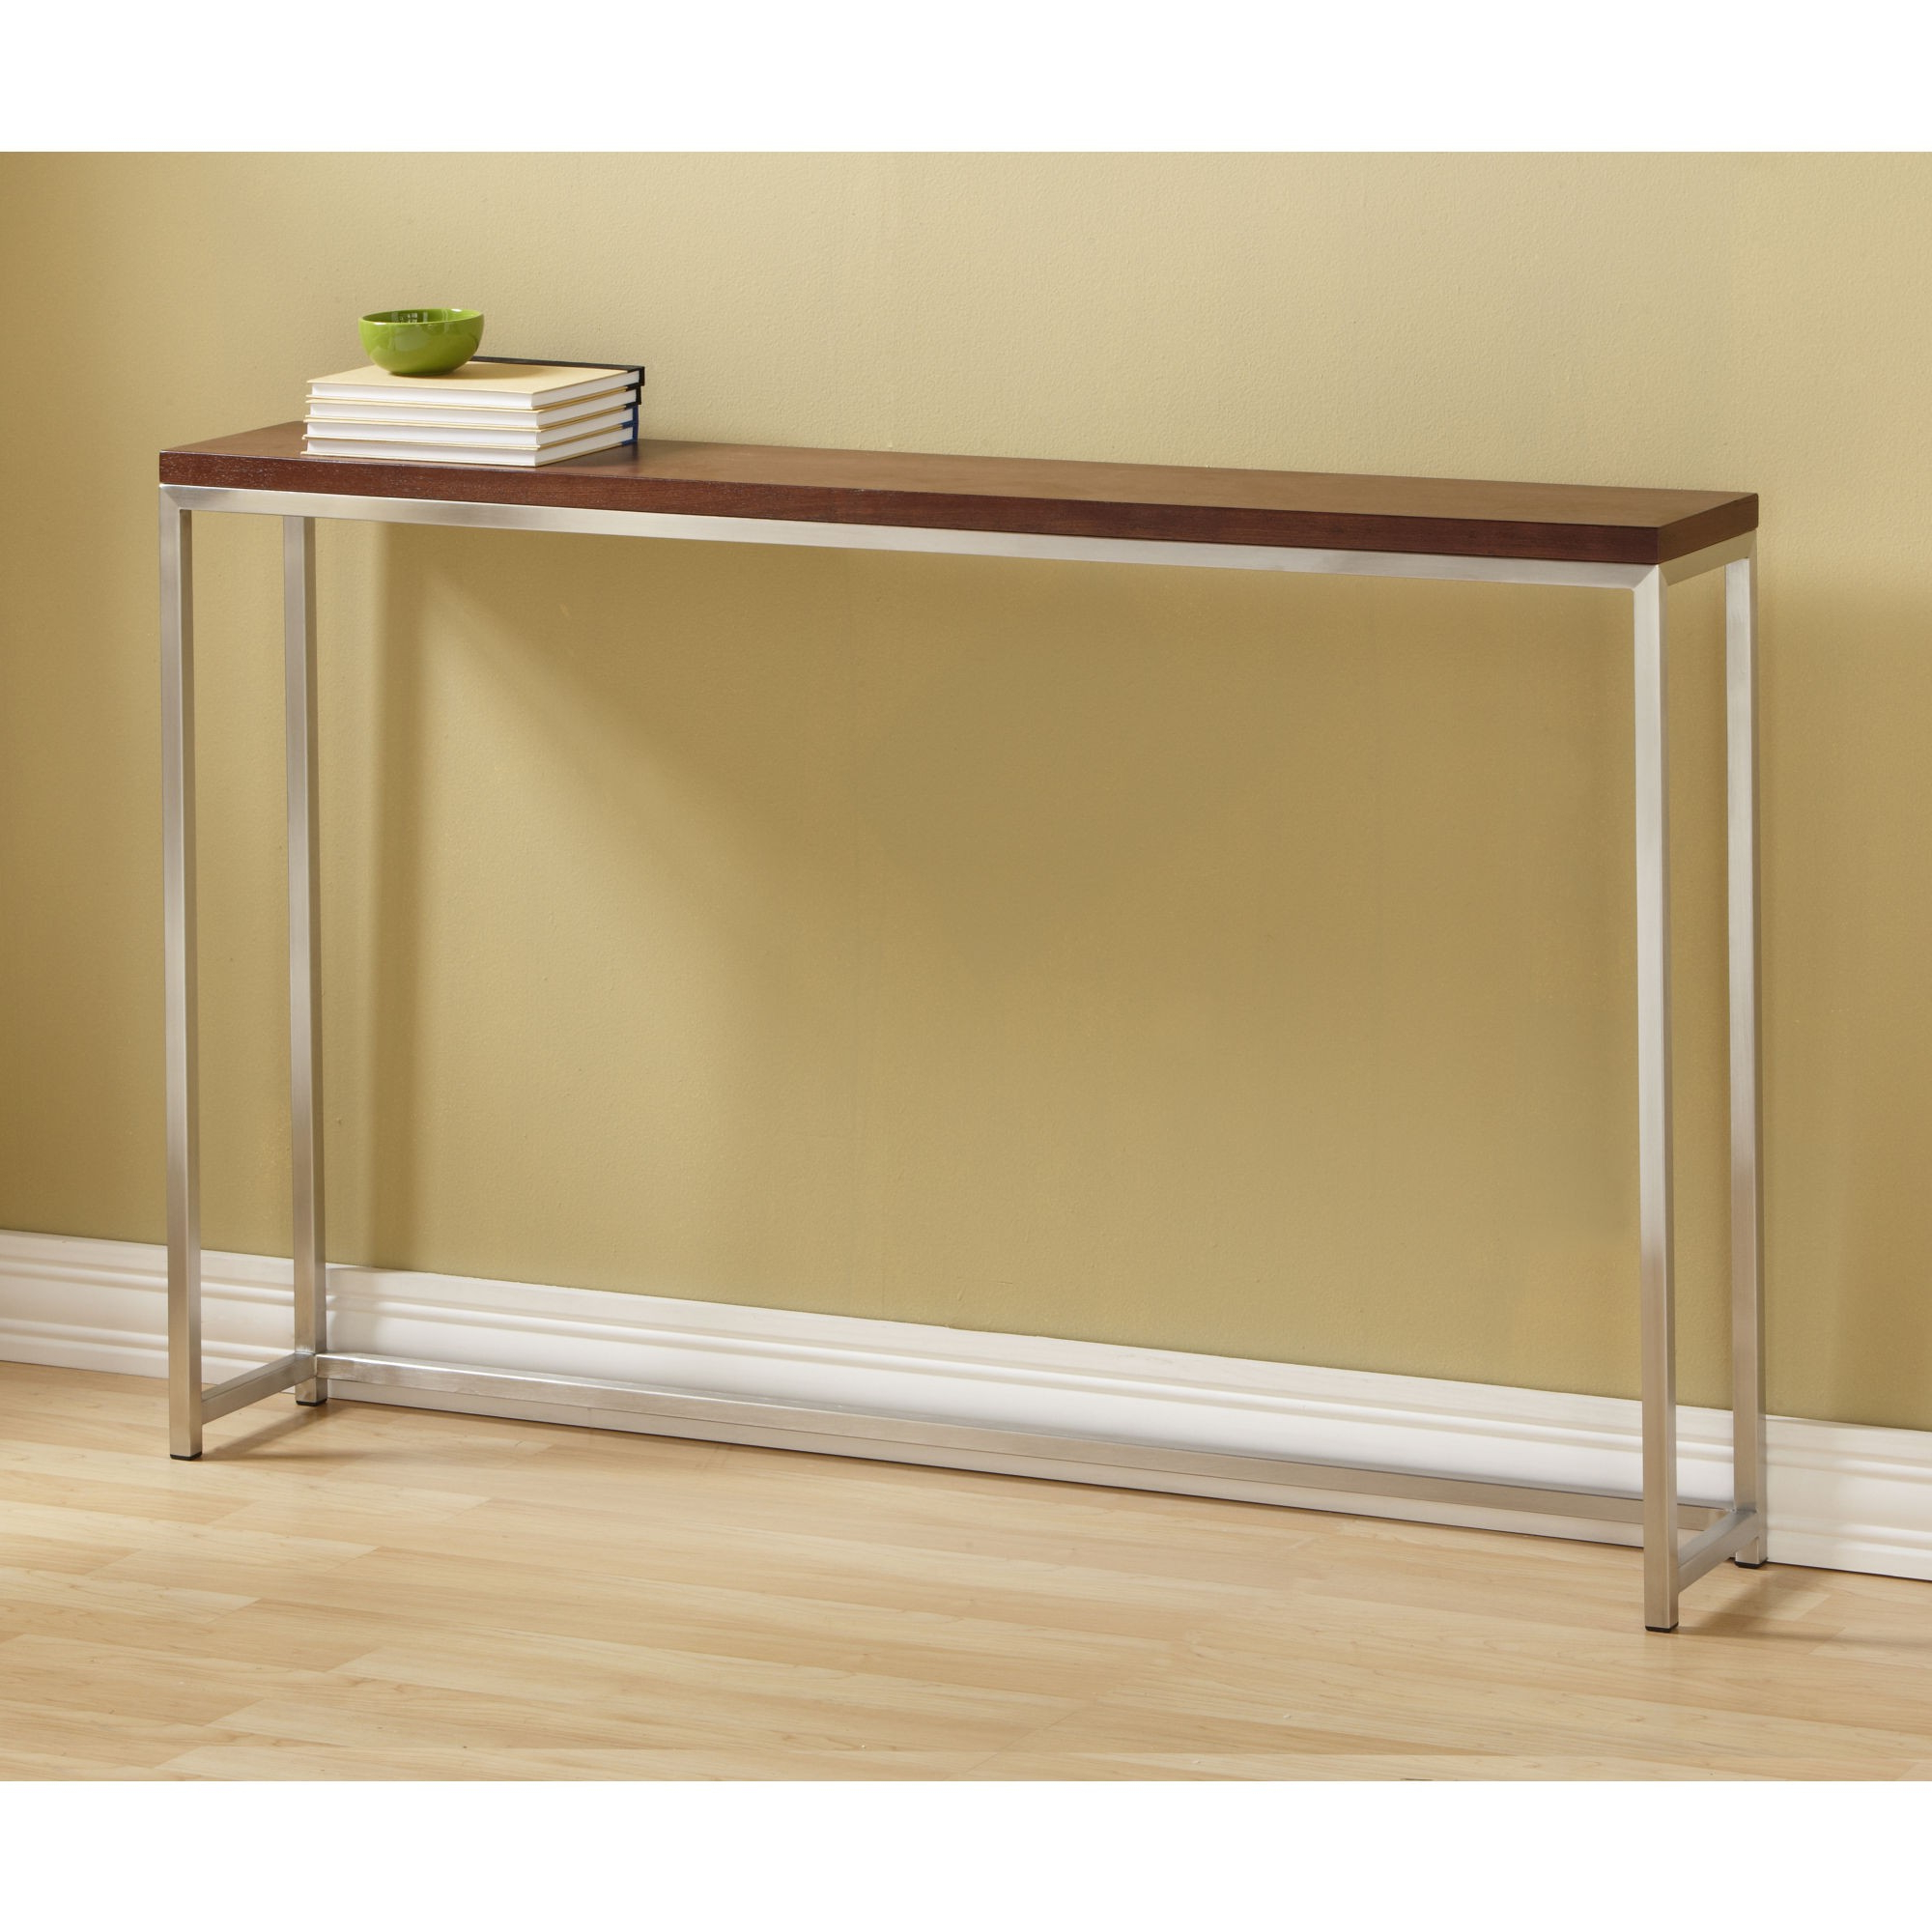 Contemporary Tall Console Table Coe With Varnished Wooden Top And With Frame Console Tables (View 9 of 20)